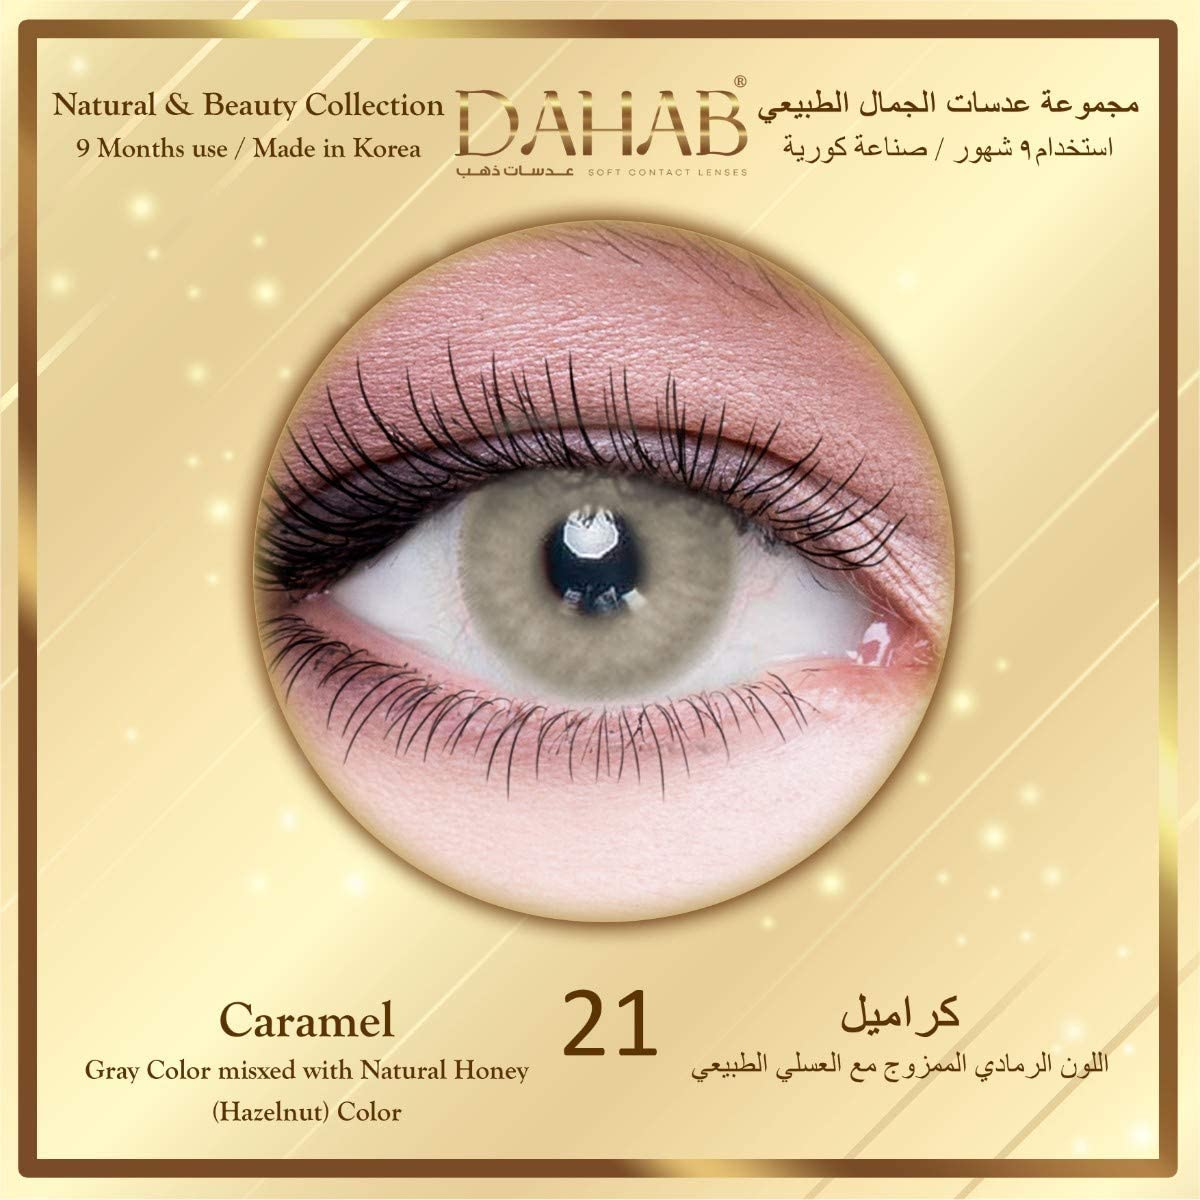 Dahab Caramel Contact Lenses, Unisex Dahab Cosmetic Contact Lenses, 9 Months Disposable- Natural and Beauty Collection, Caramel (Gray Color)